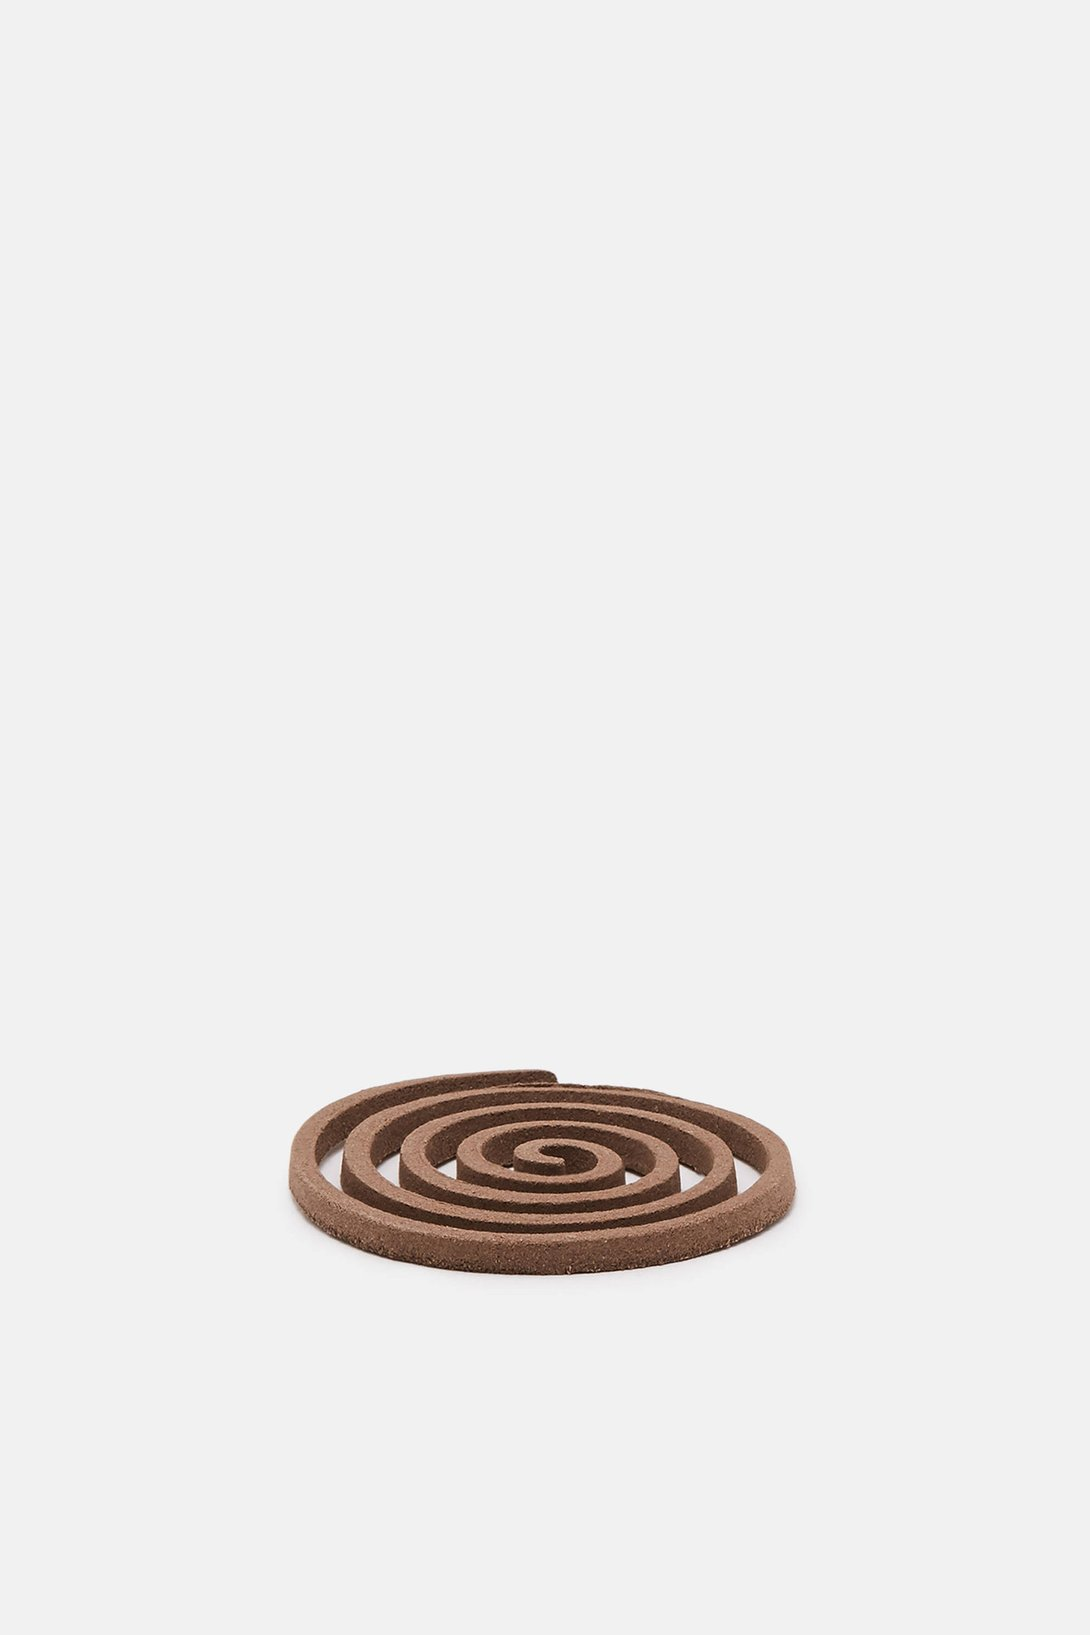 Spiral Incense, $42 @theline.com